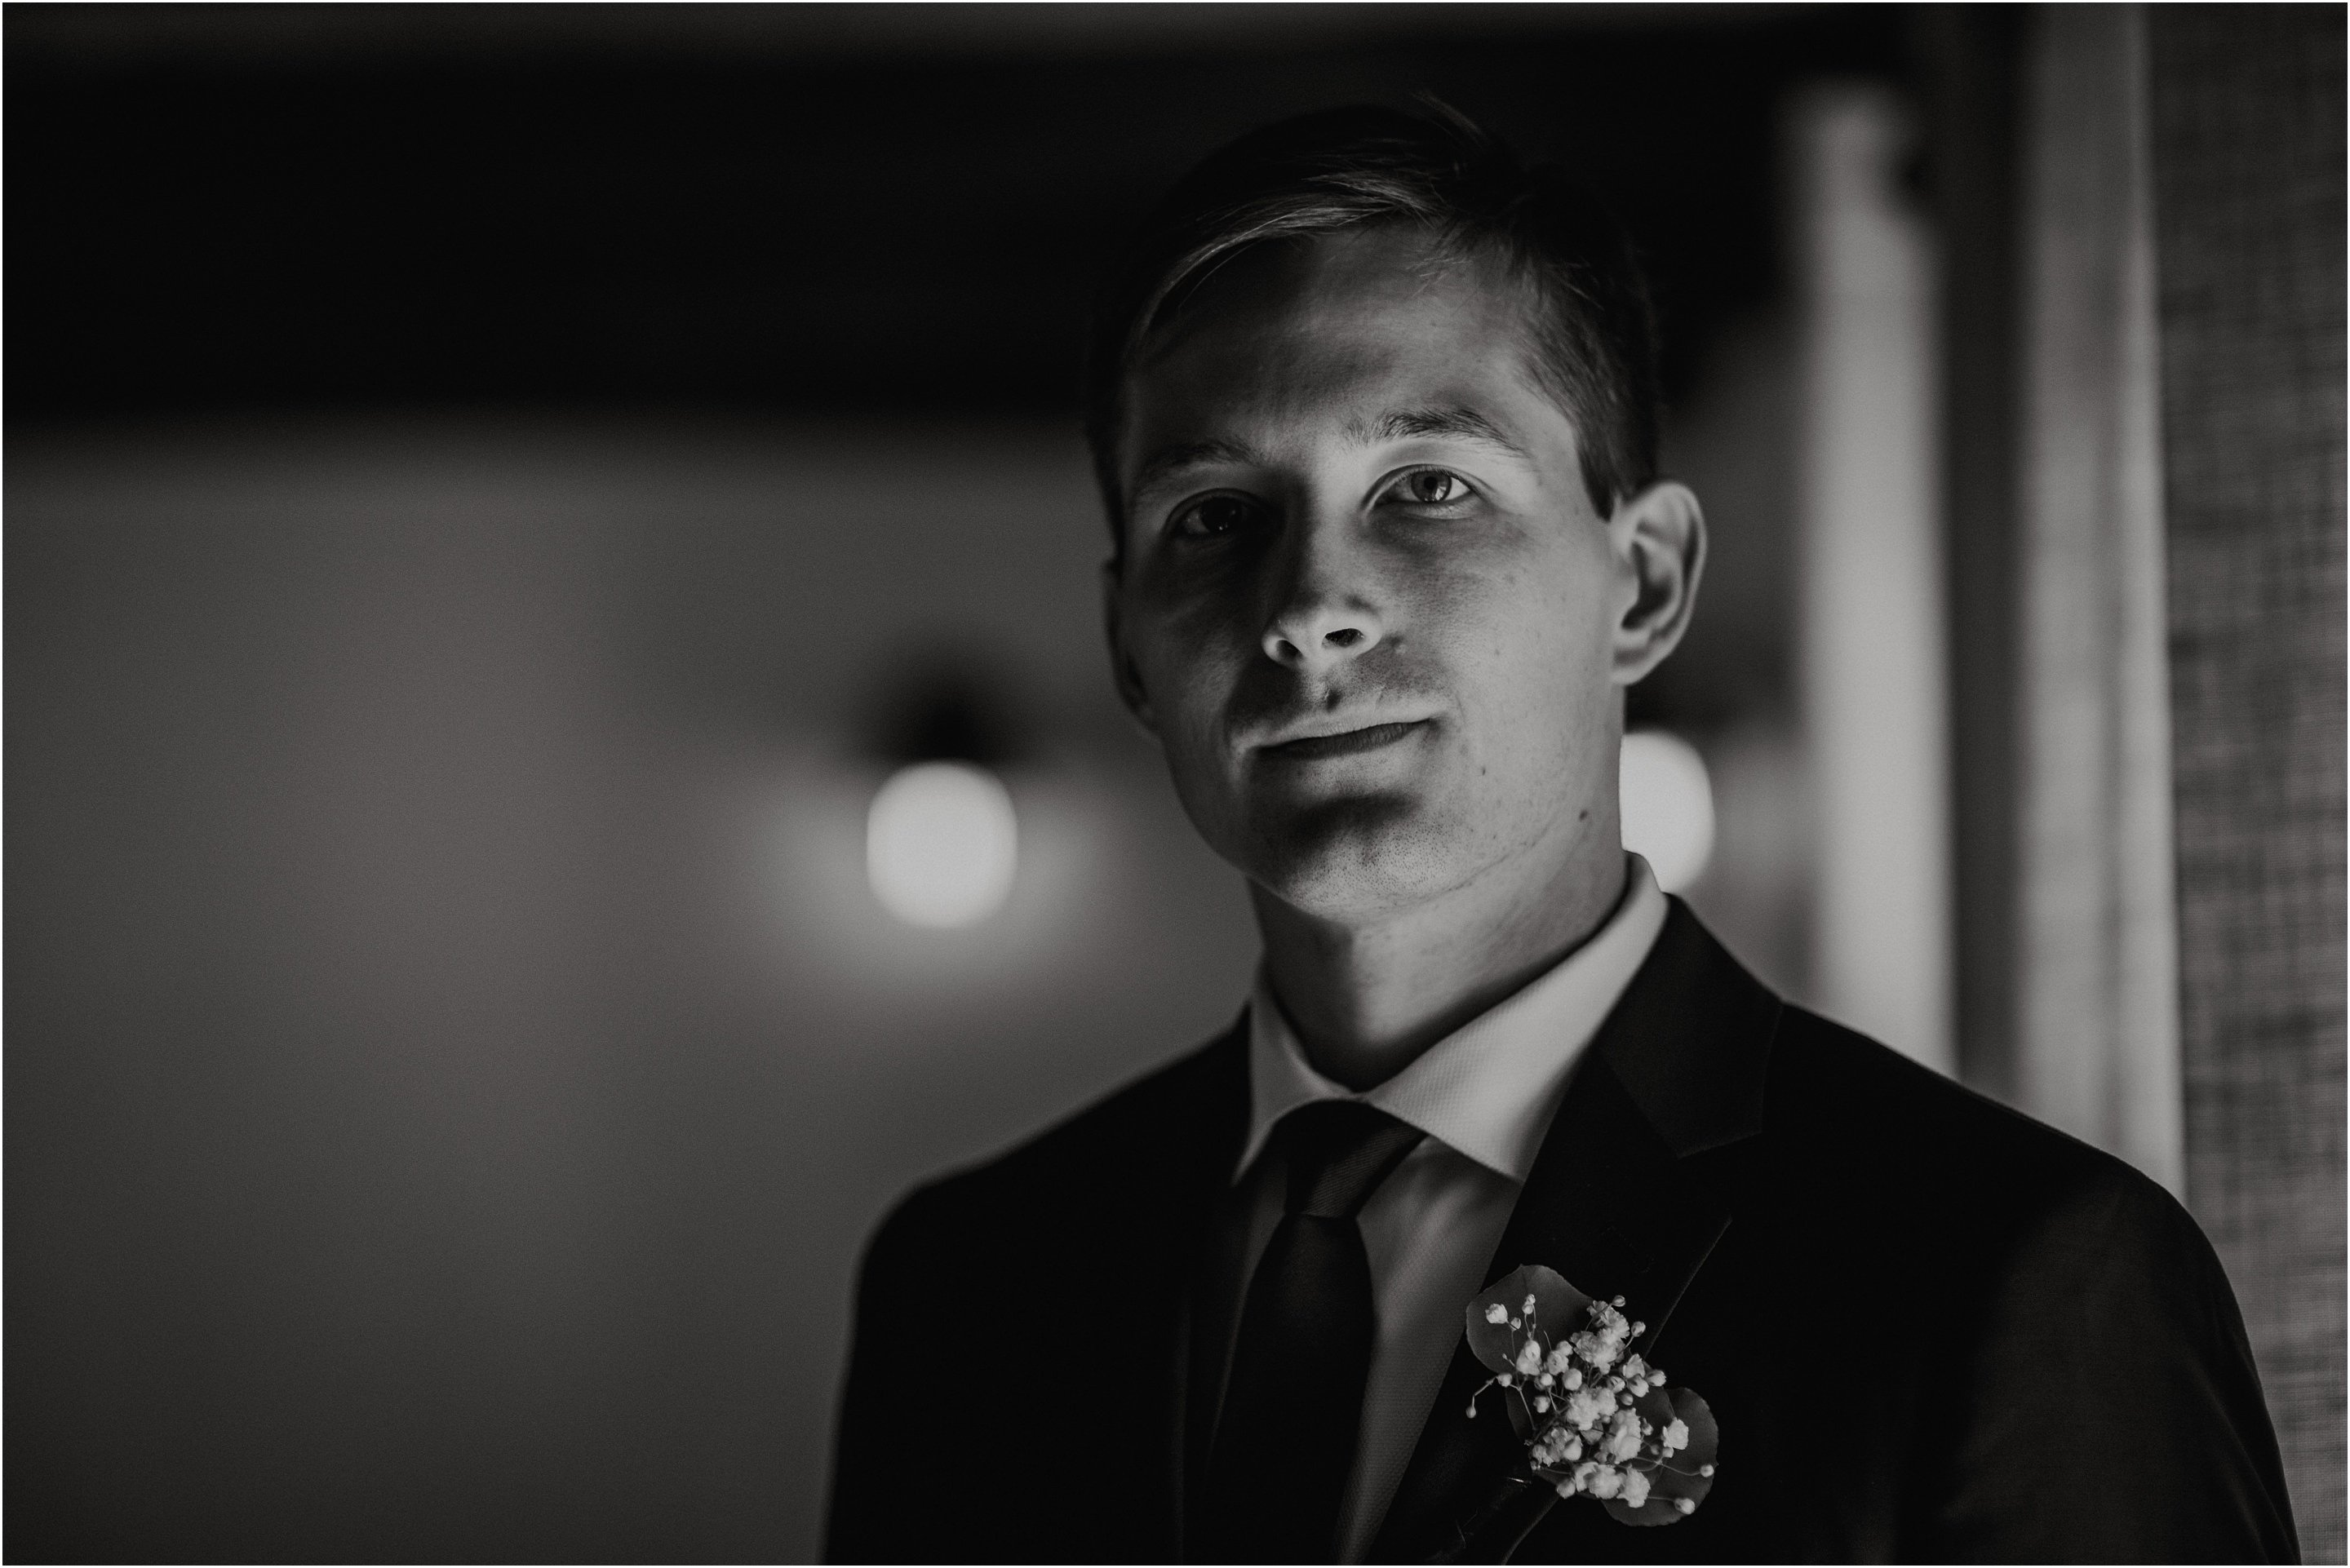 A moody portrait of the groom by Cindy Lottes Photography